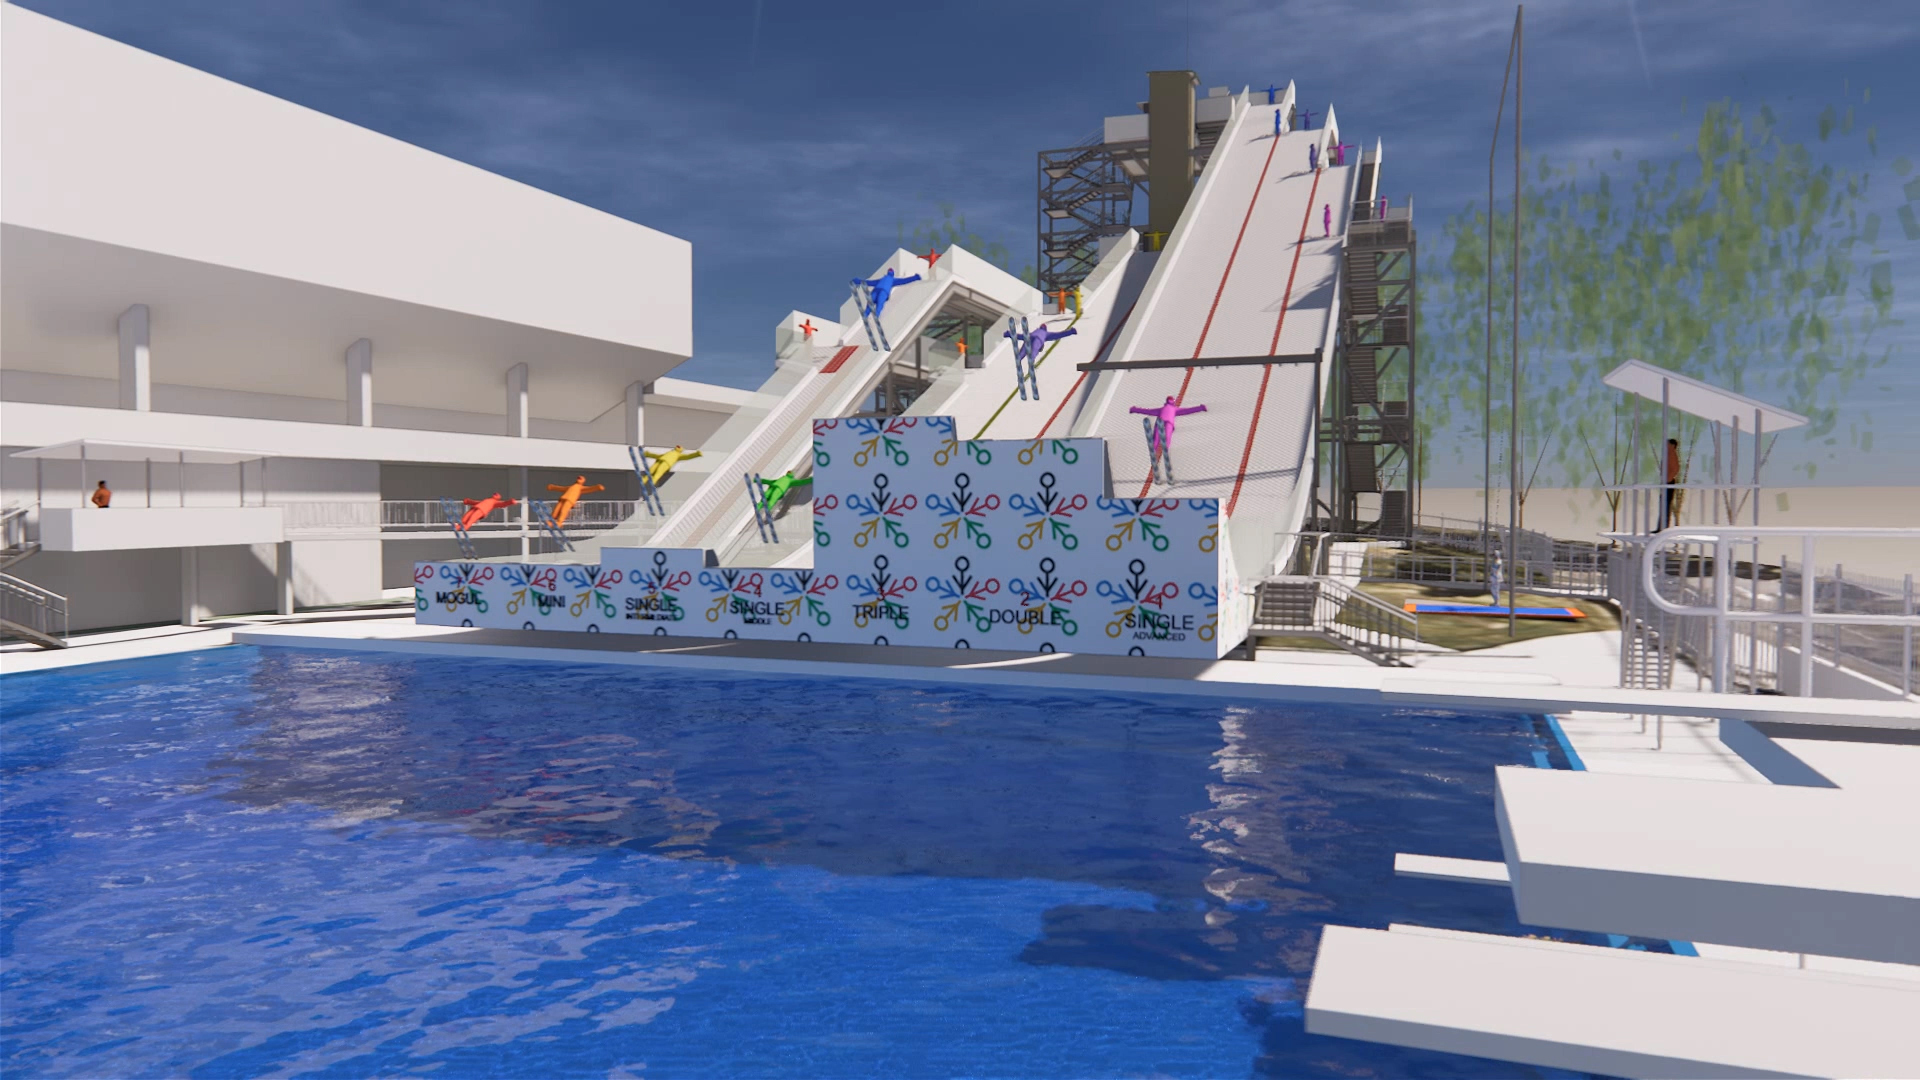 International Feestyle Skiing Training Facility at the Sleeman Sports Complex – Pool and Ski Ramps 3D Render – Gardner Wetherill GW 1